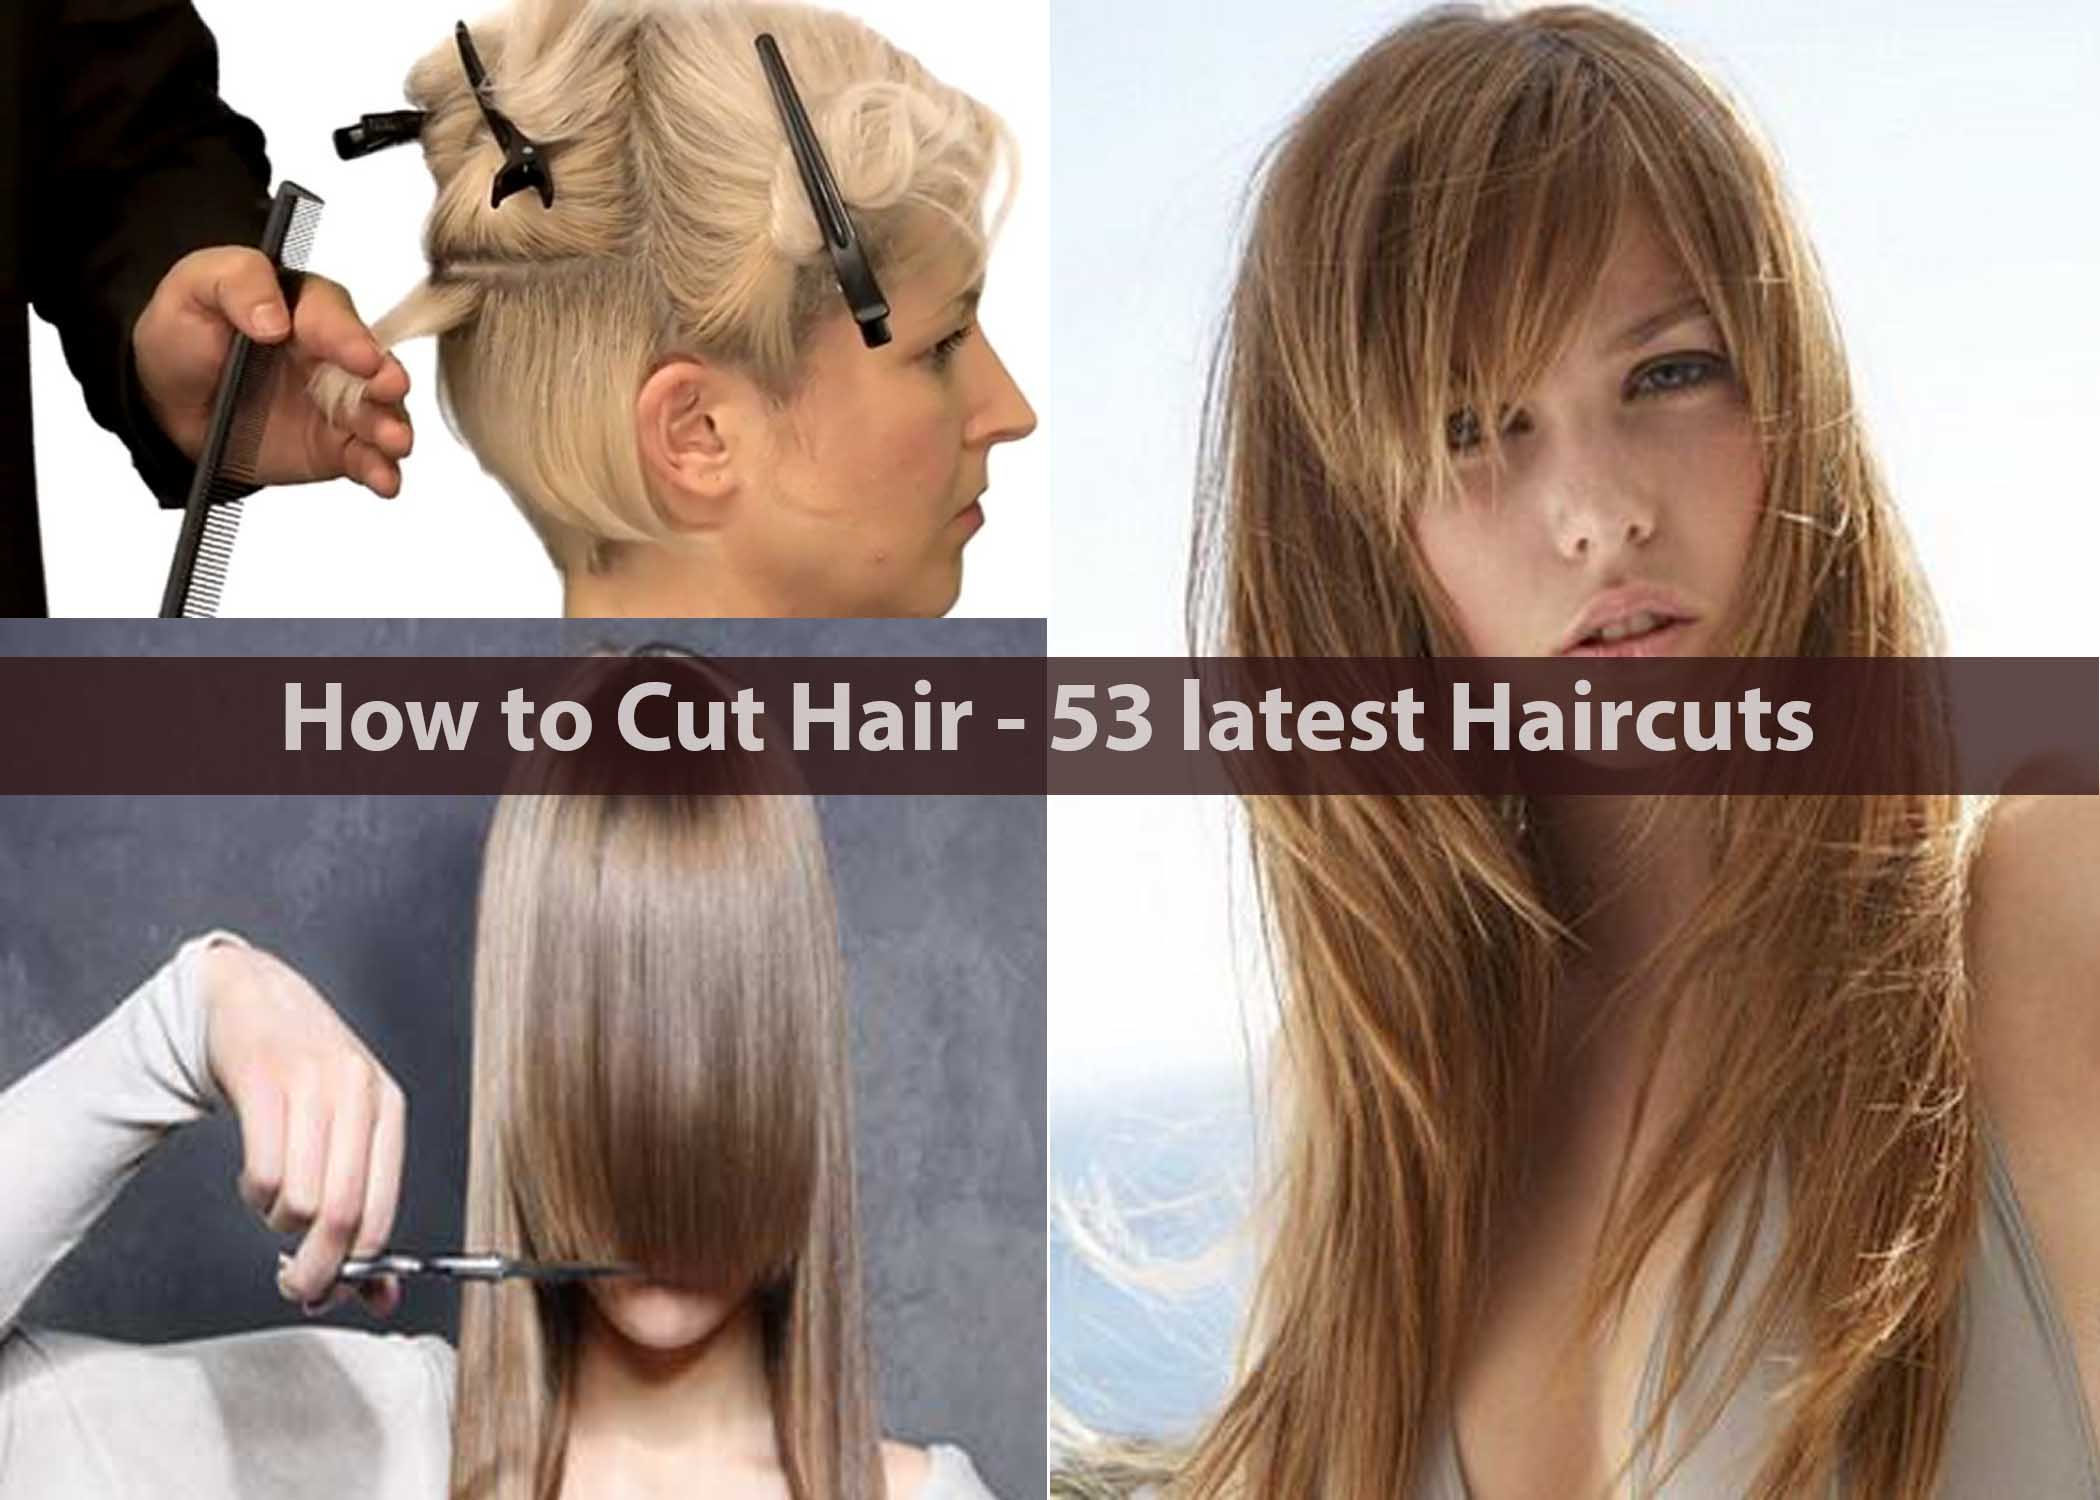 How-to-Cut-Hair-53-latest-Haircuts